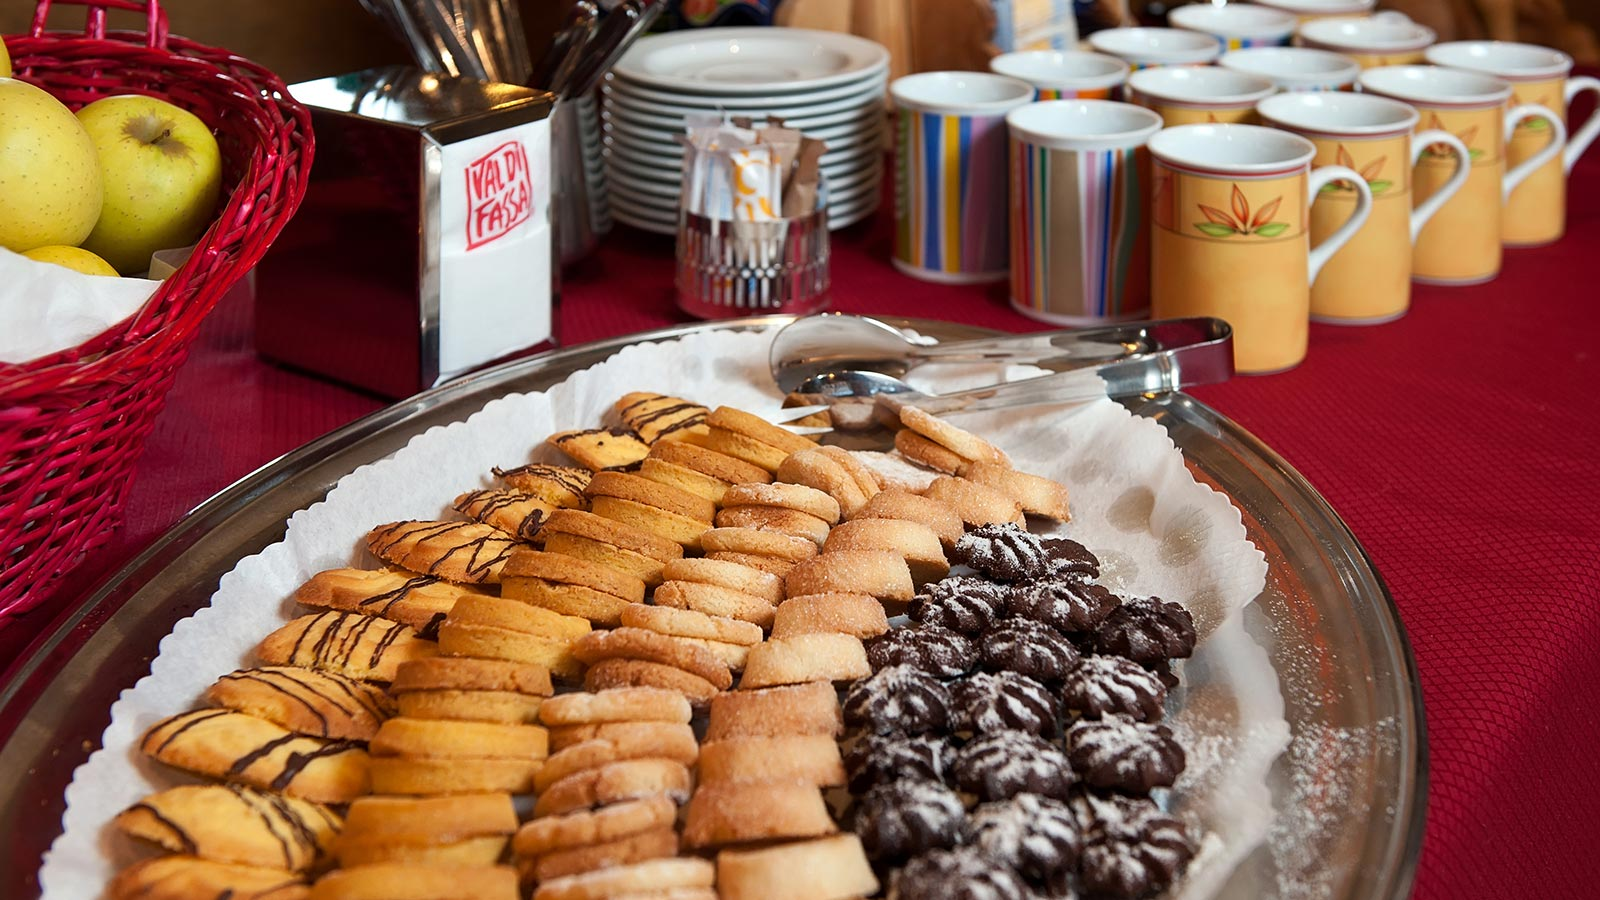 baked cookies on a silver plate - the breakfast buffet at La Serenella